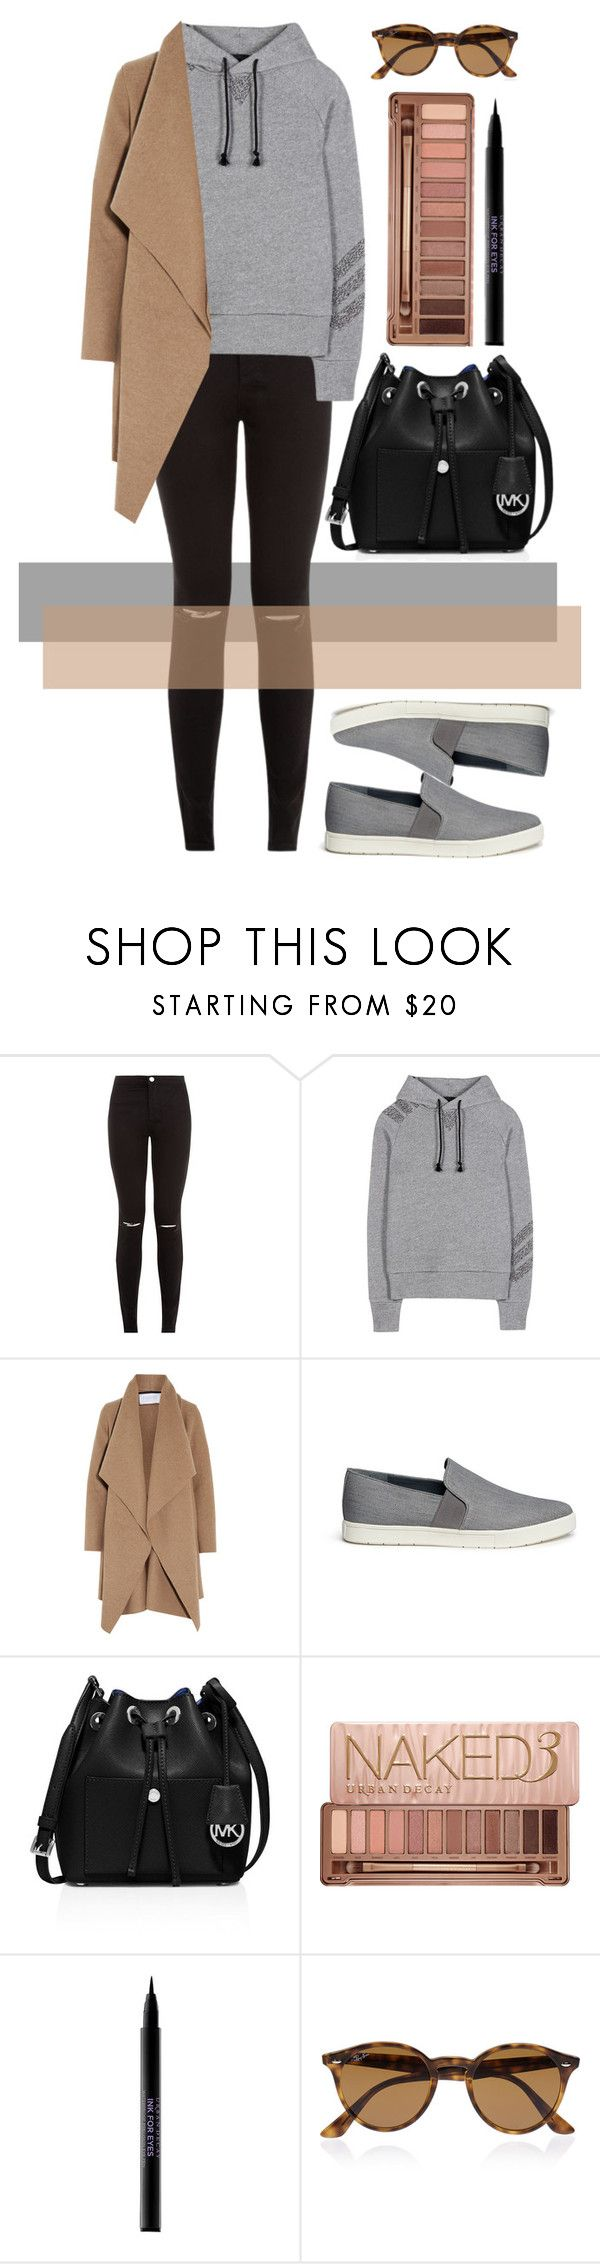 """""""Untitled #540"""" by ssm1562 on Polyvore featuring Y-3, Harris Wharf London, Vince, MICHAEL Michael Kors, Urban Decay, Ray-Ban, women's clothing, women's fashion, women and female"""